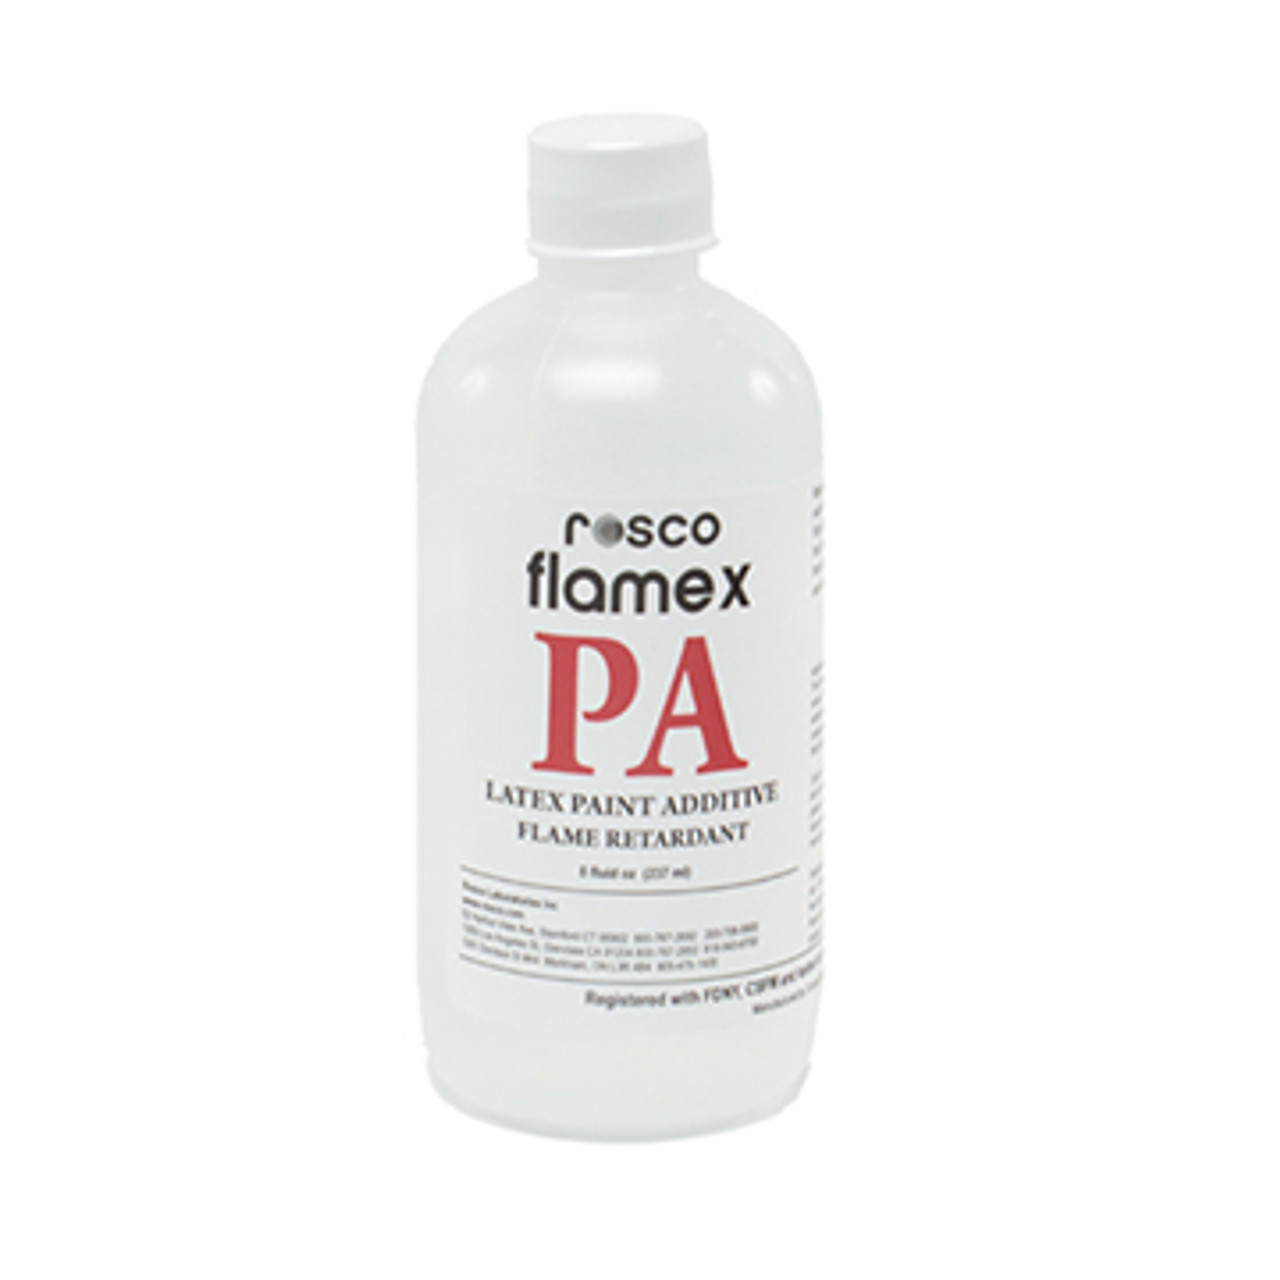 Rosco Flamex Latex Paint Additive